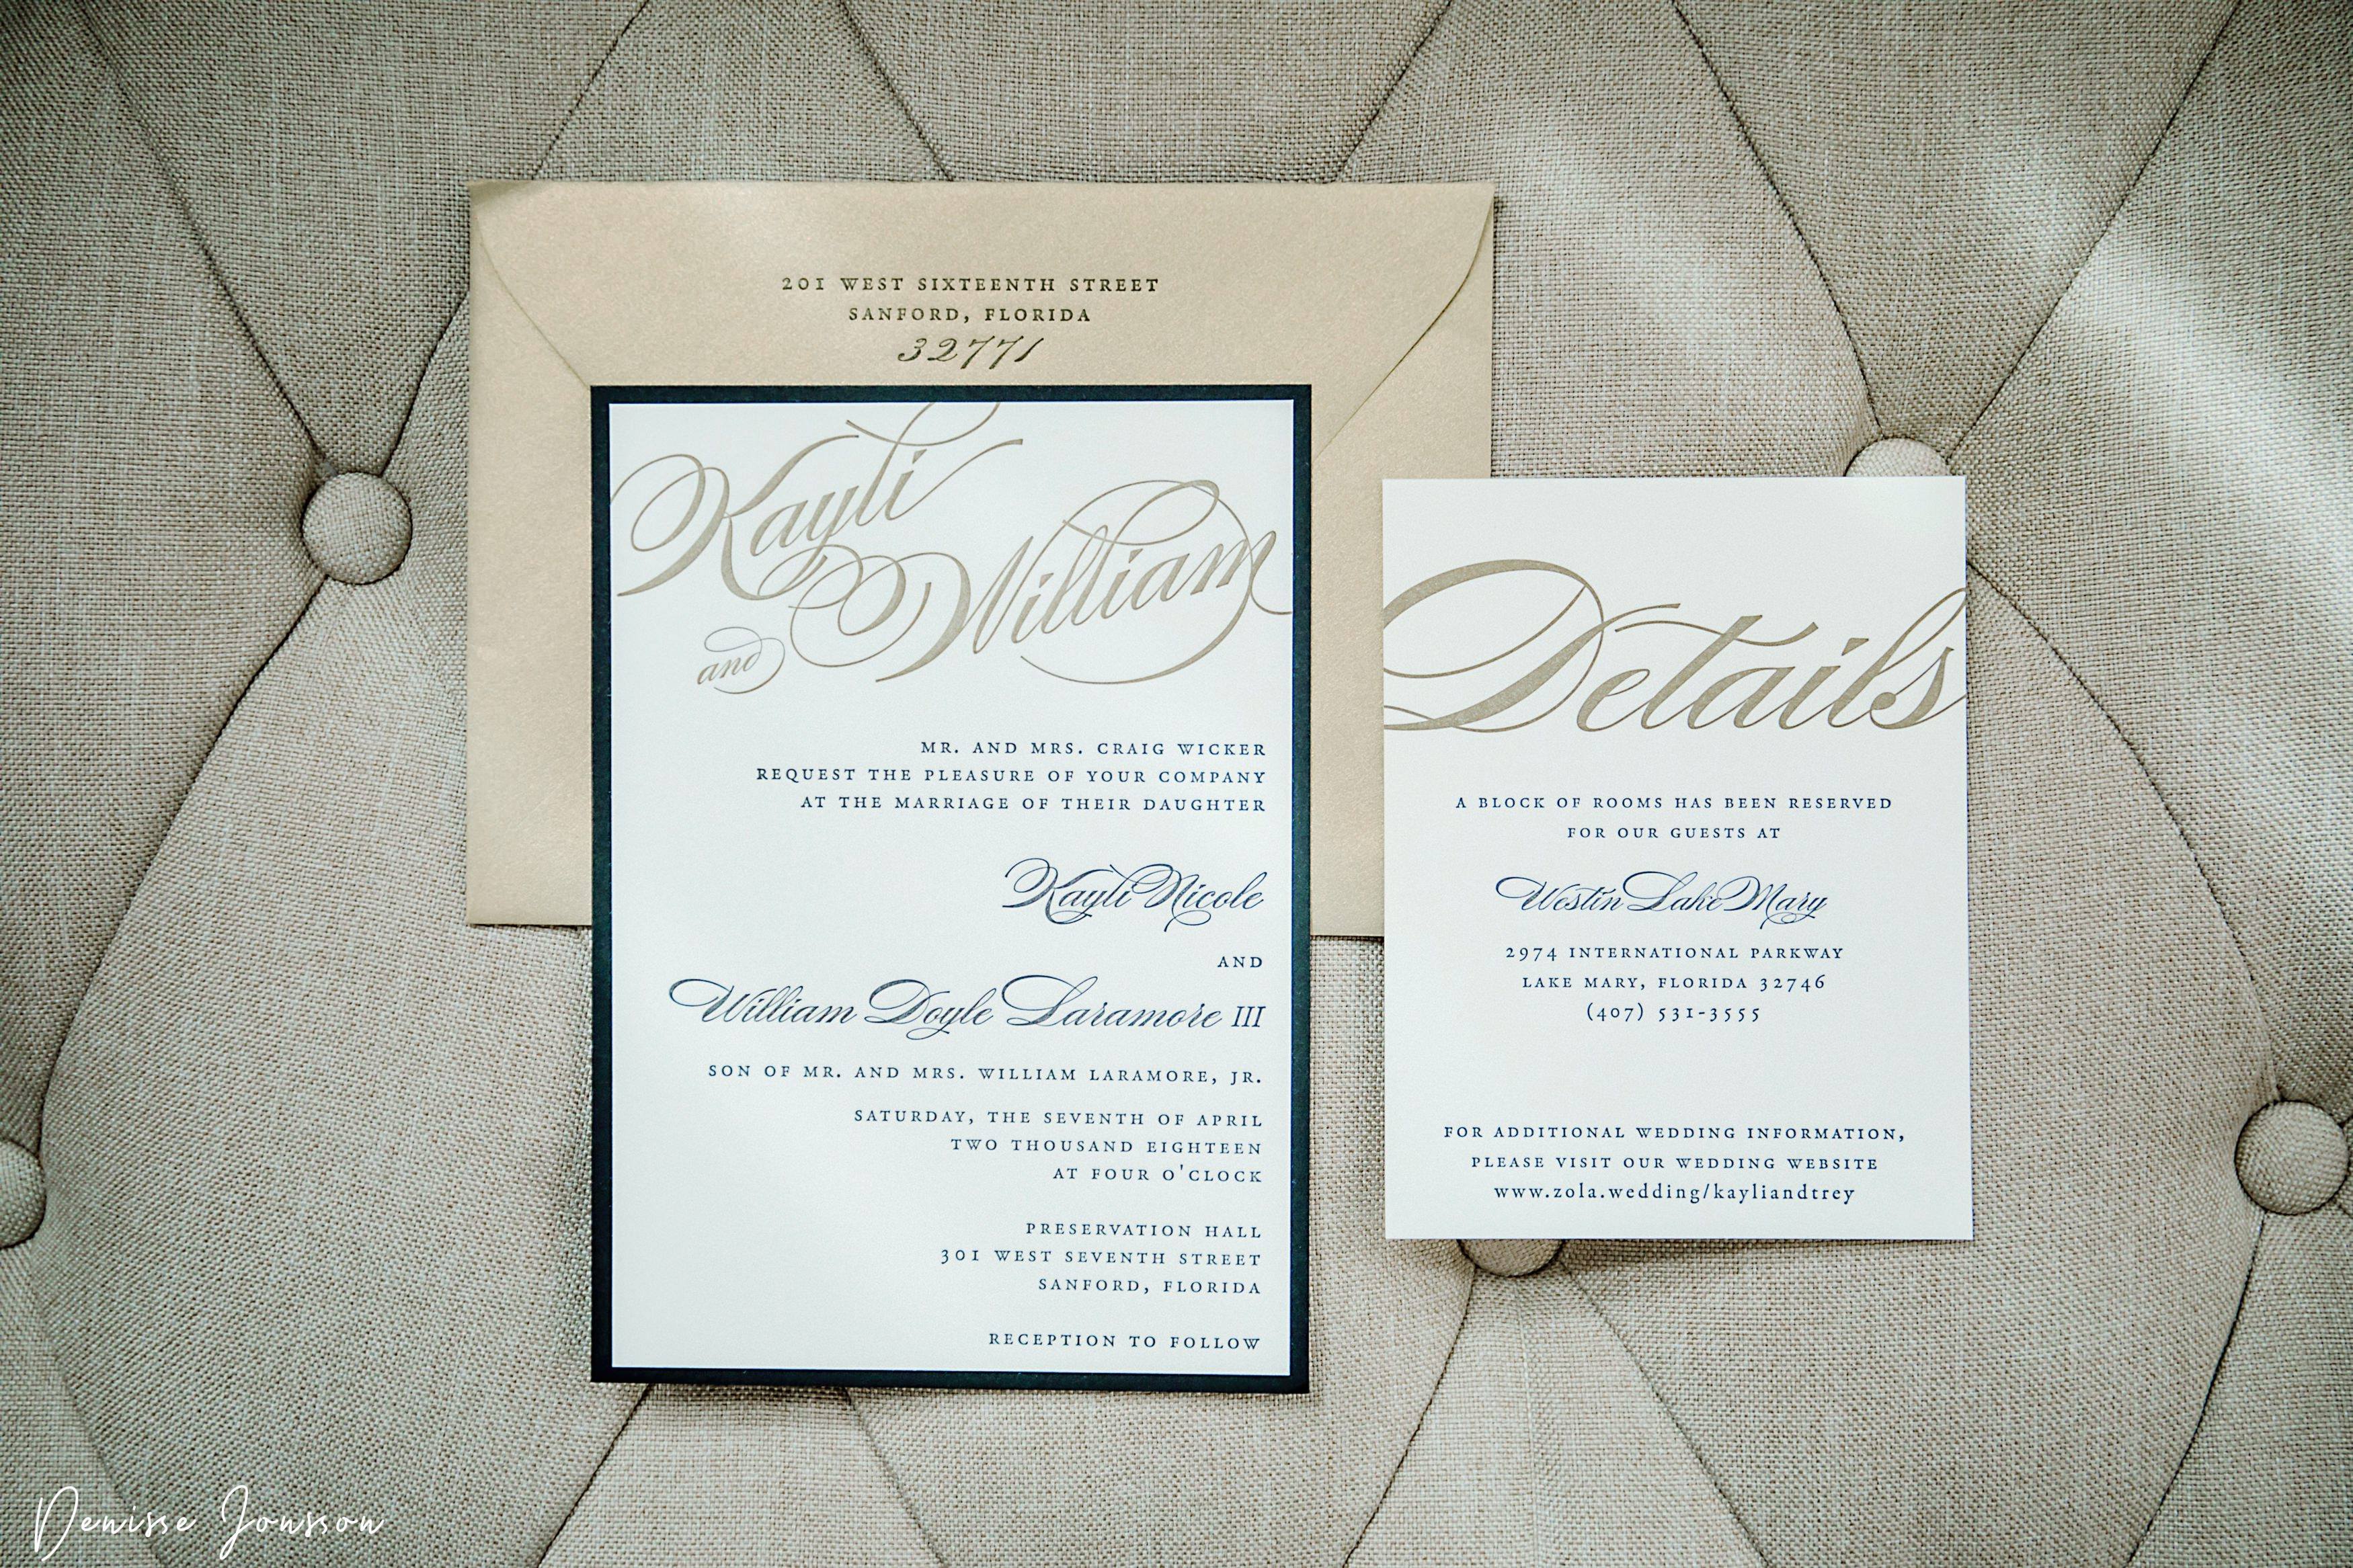 Classic Southern Charm Wedding at Venue 1902 (Preservation hall)